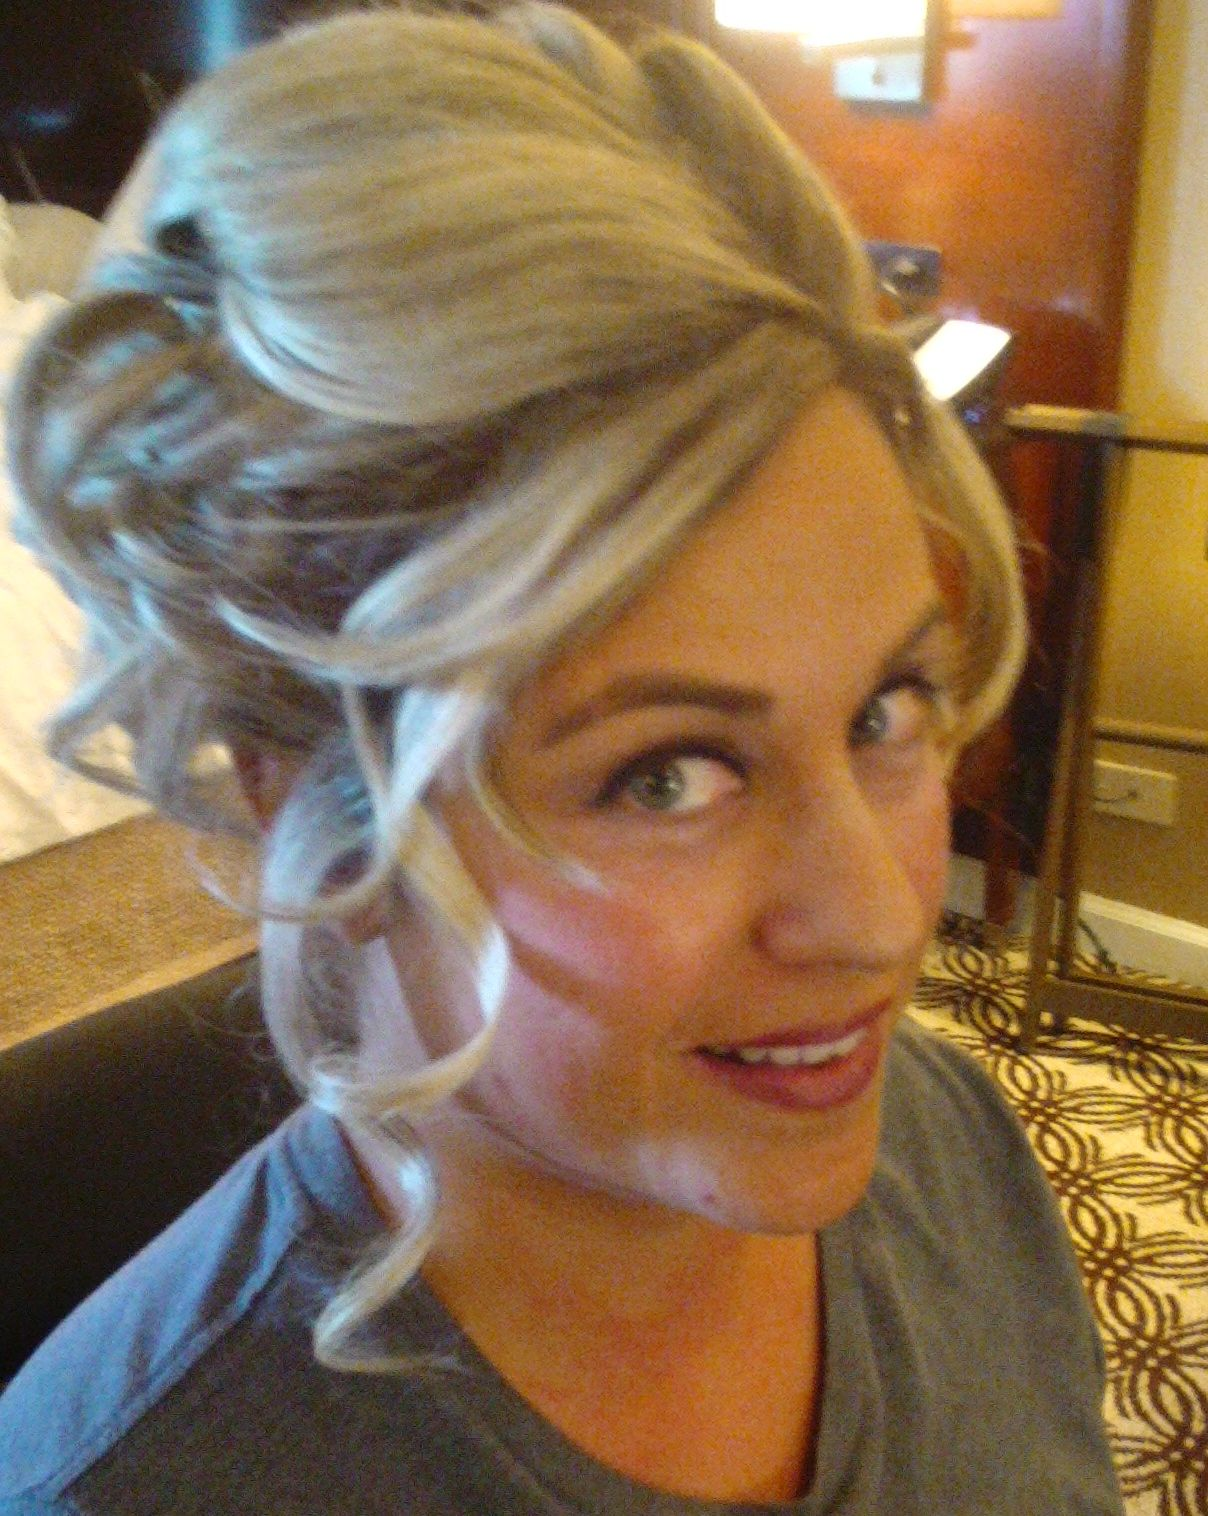 updo by rochelle noone on location bridal hairstylist pittsburgh pa